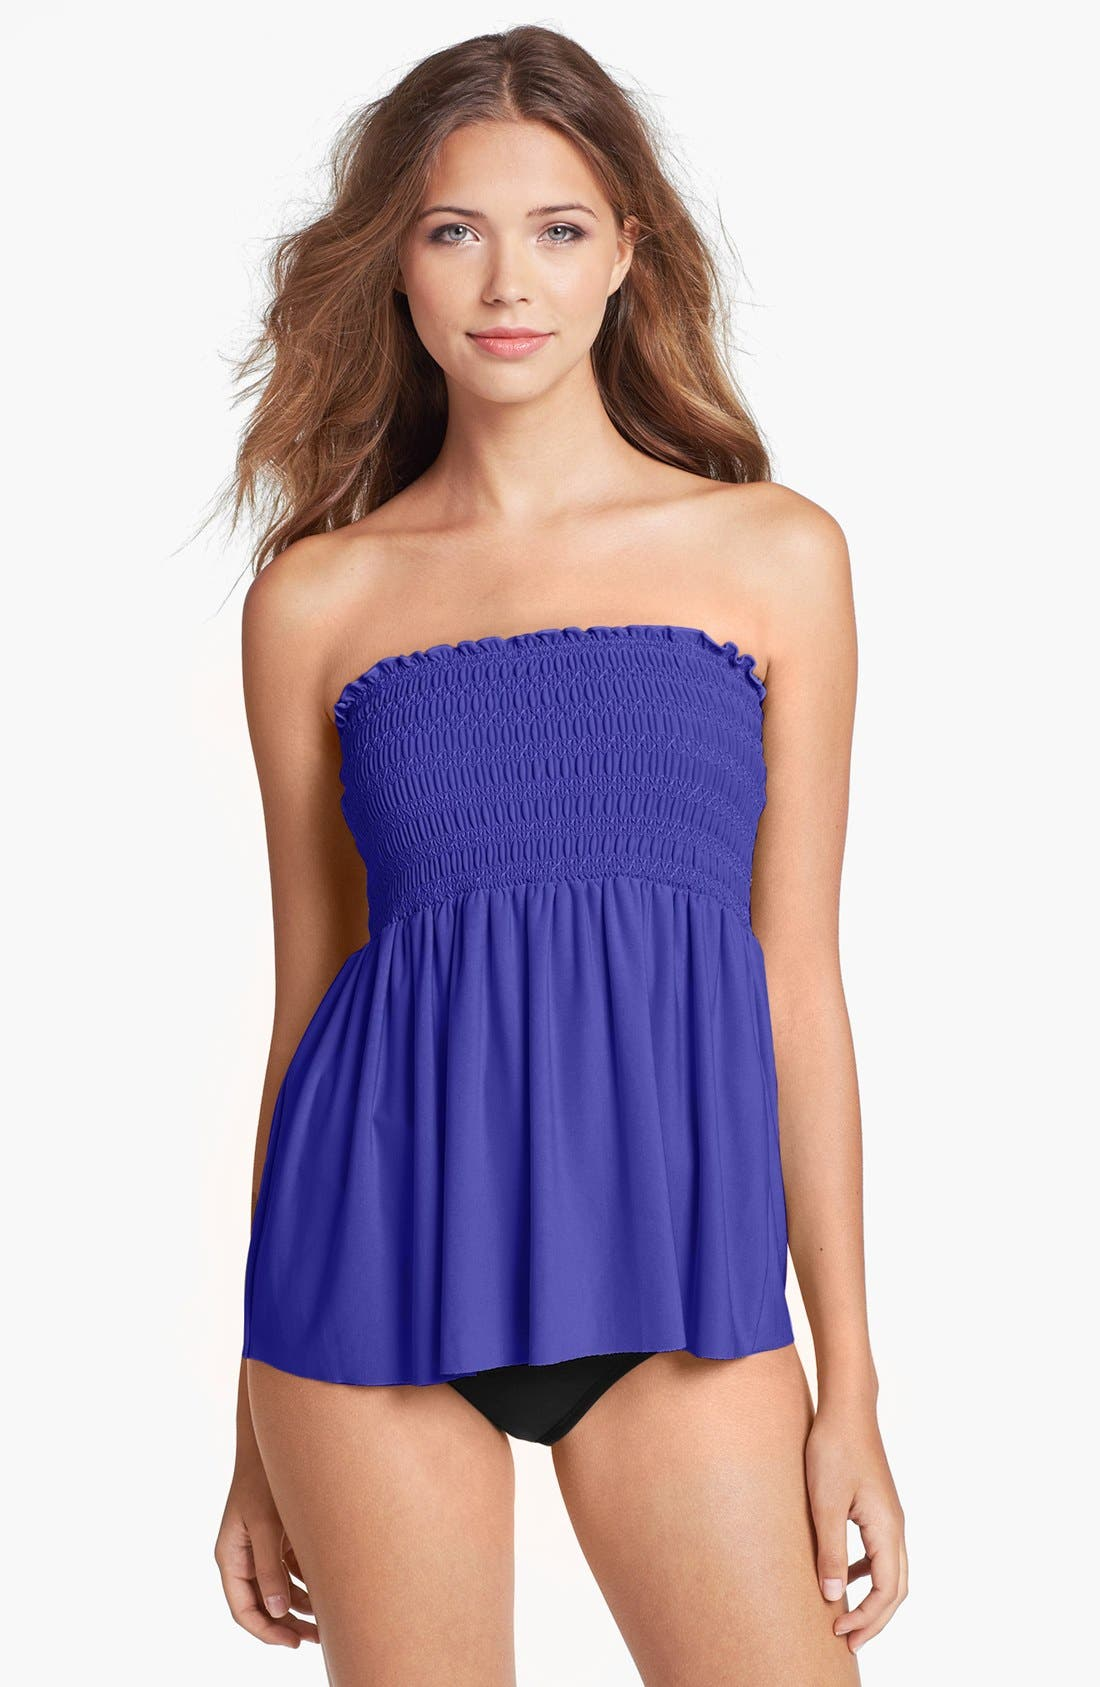 Main Image - Magic Suit by Miraclesuit® 'Vicki' Underwire Bandeau Tankini Top